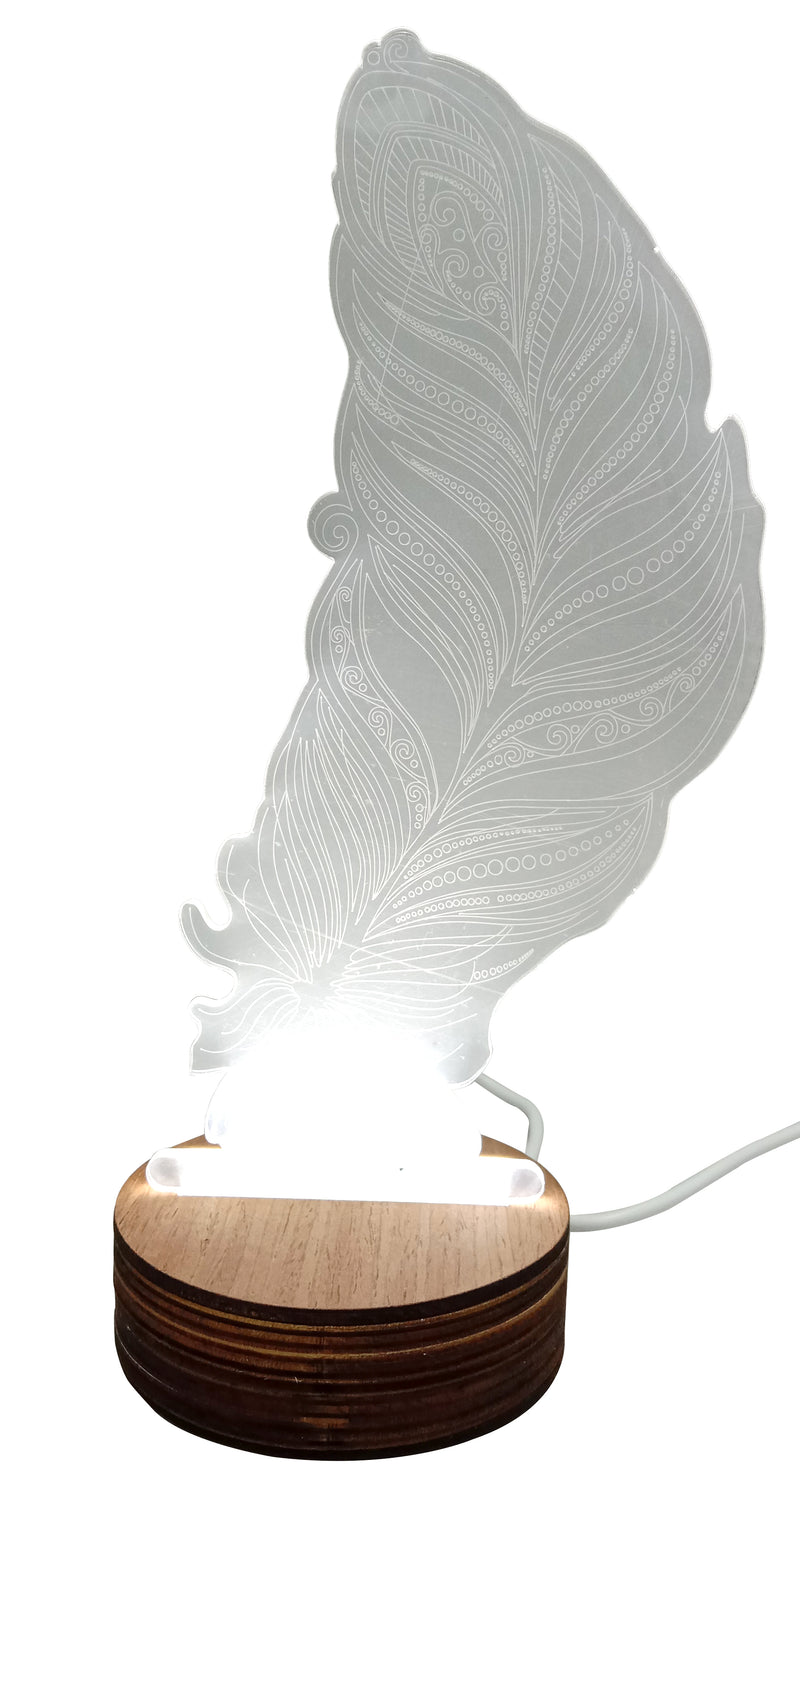 3D Lamp For Leaf Design